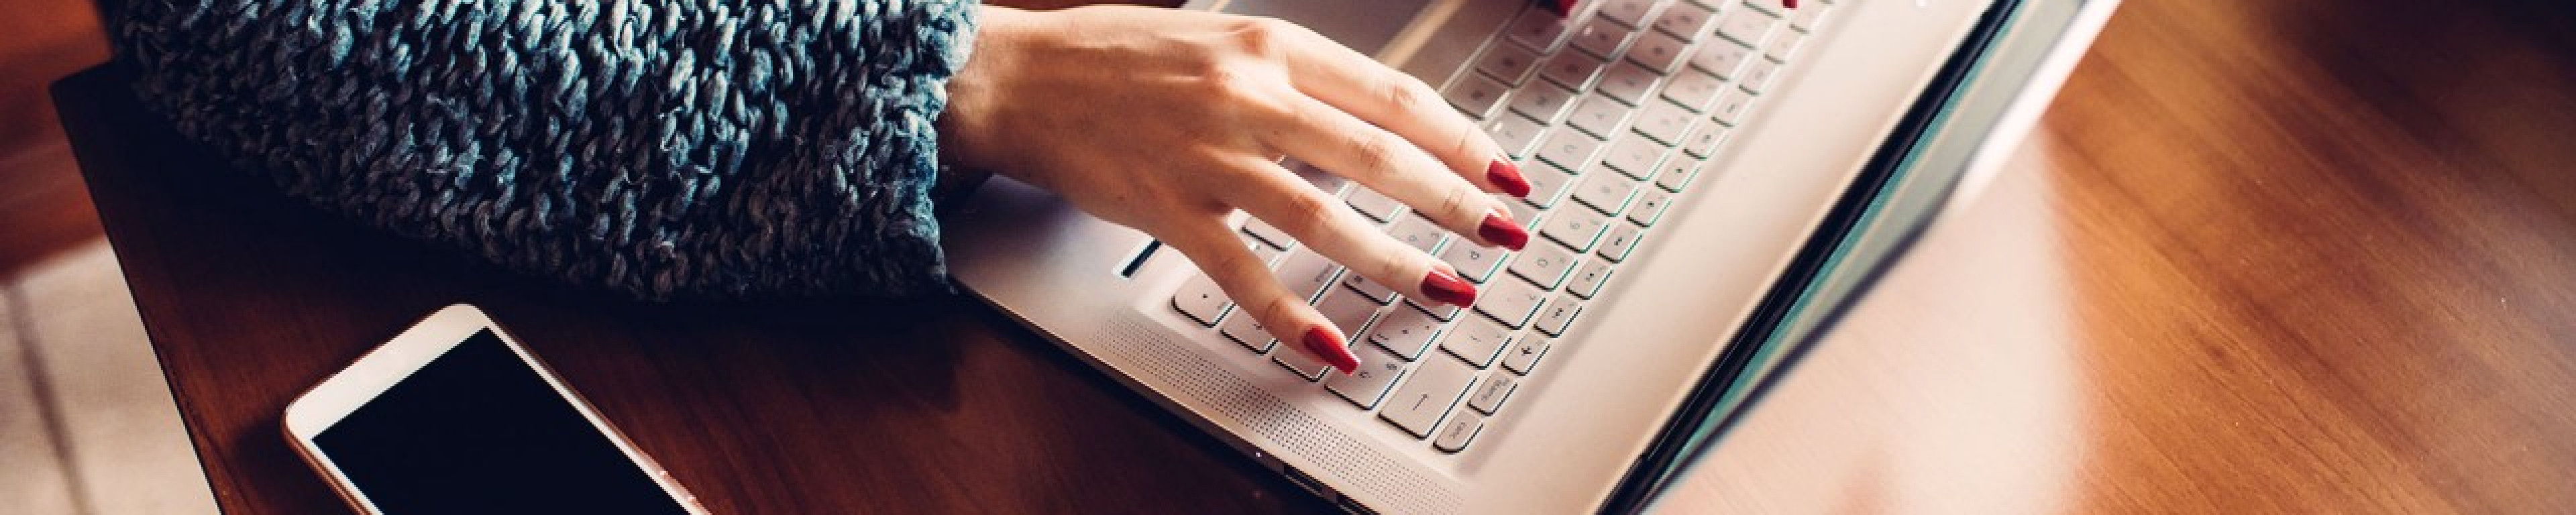 lady typing at a computer